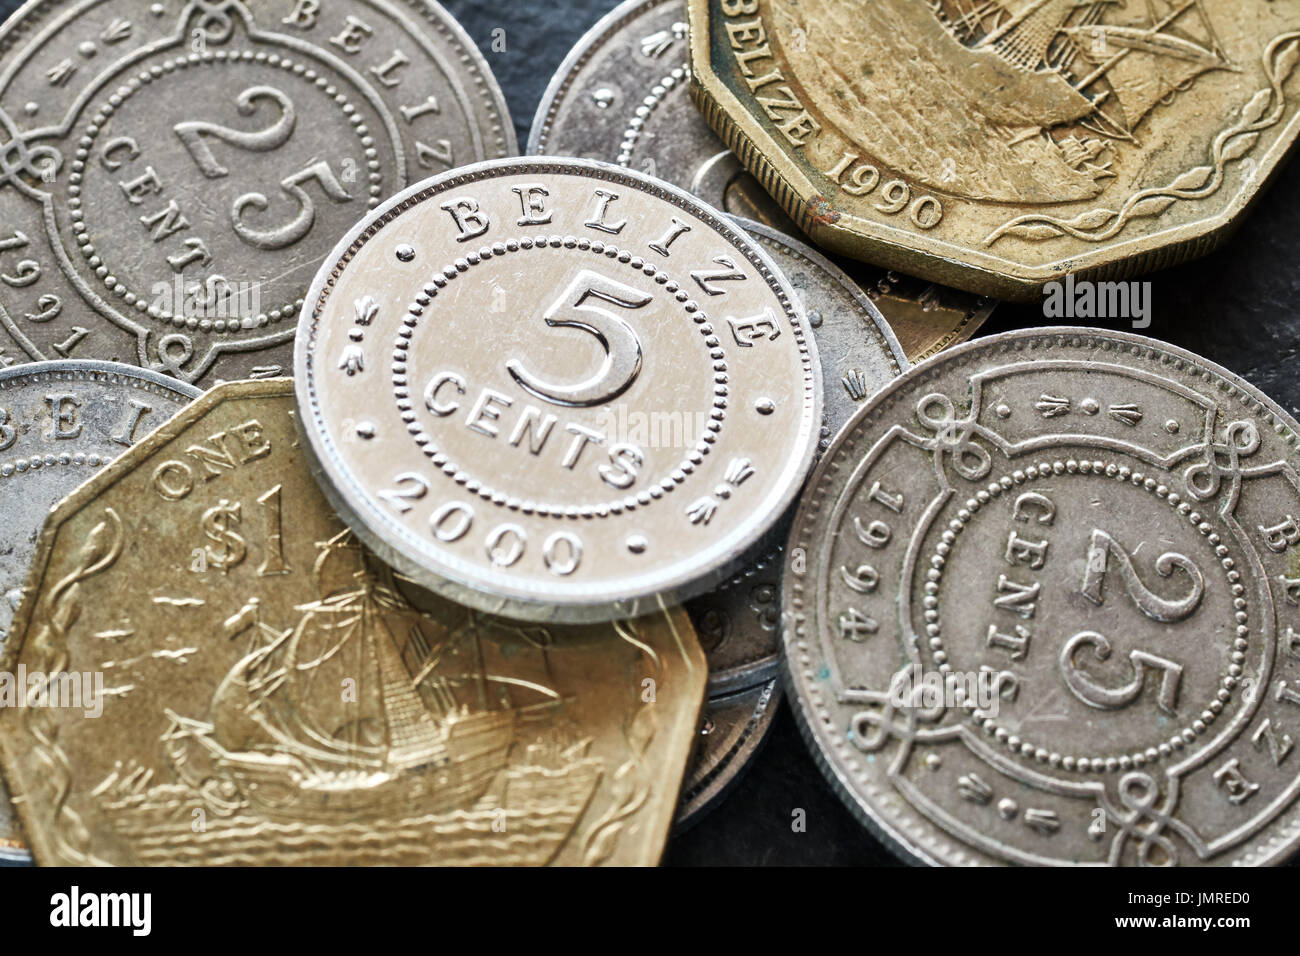 Extreme close up picture of Belize money, shallow depth of field. - Stock Image